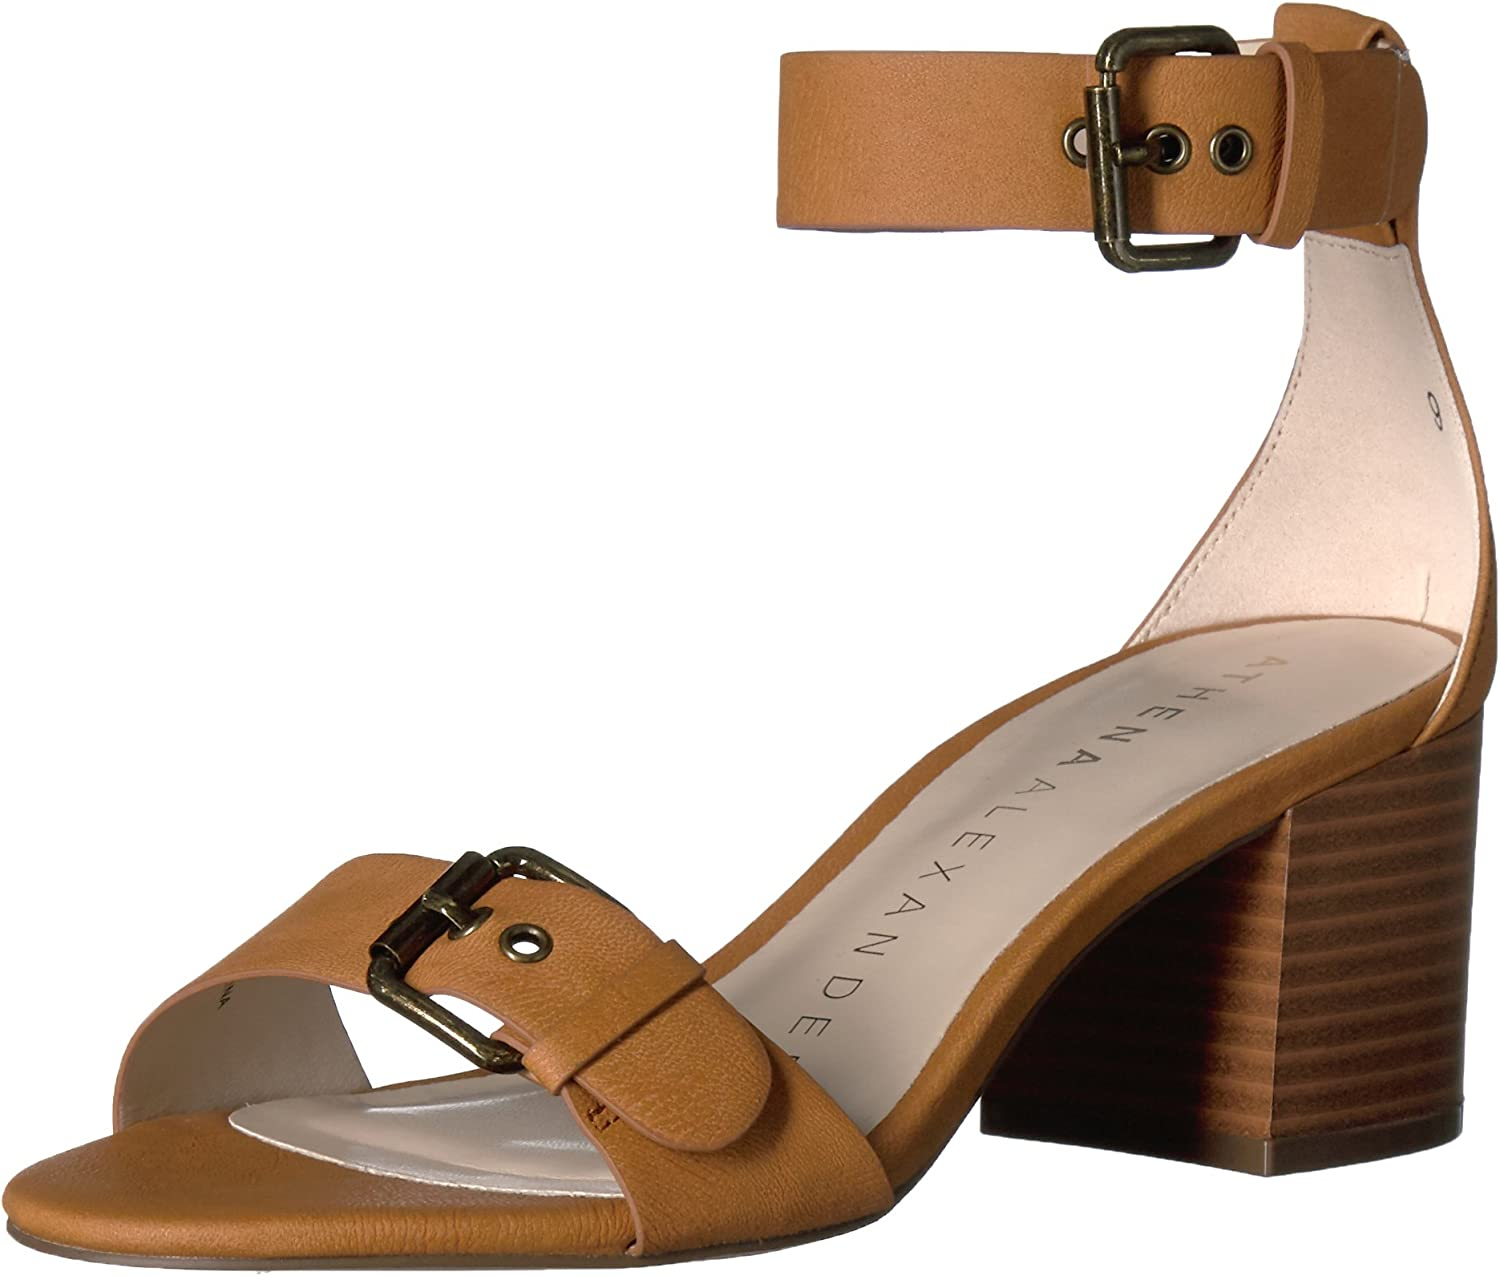 Athena Alexander Womens Makkenzie Dress Sandal